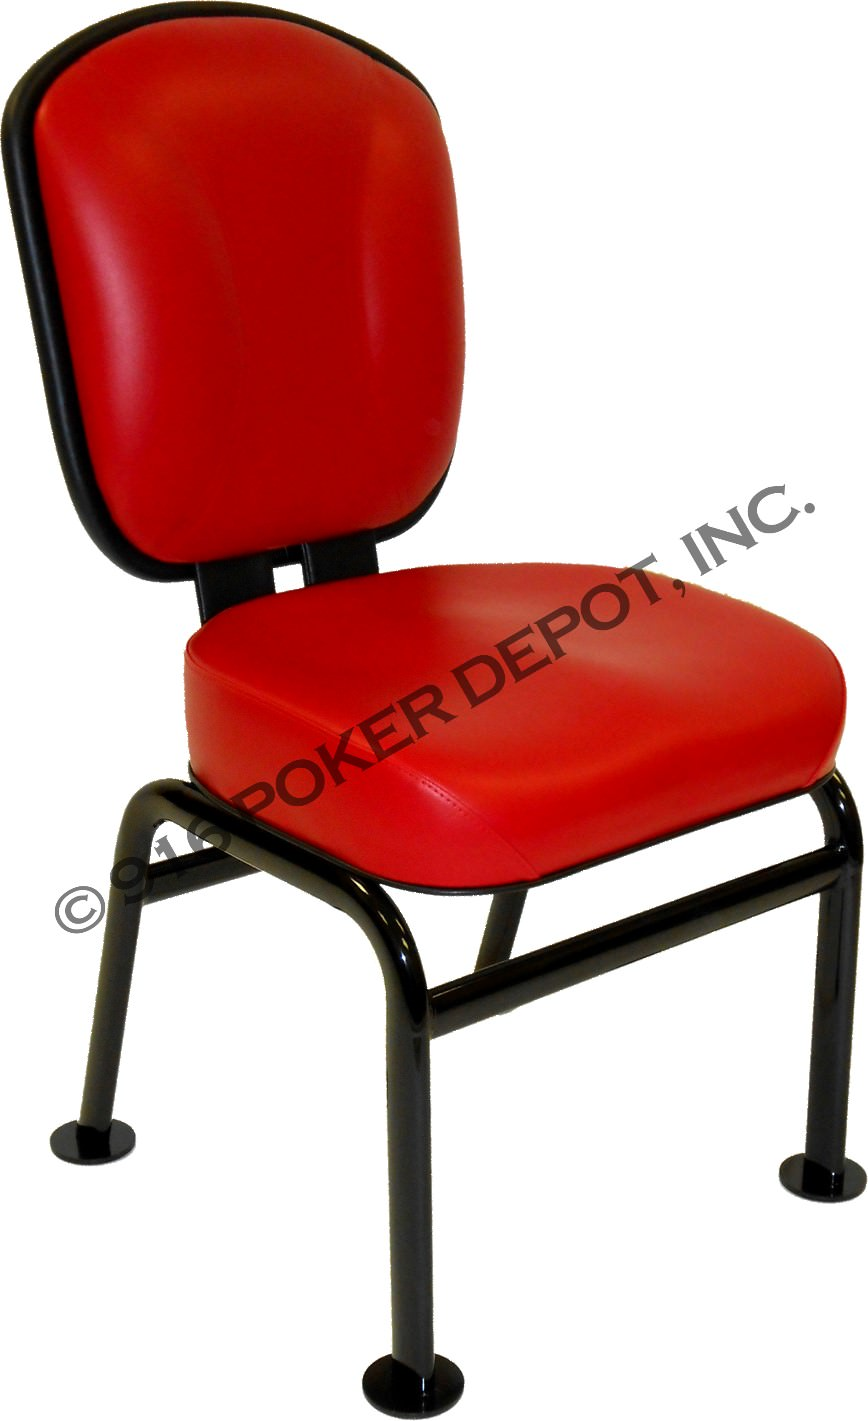 The Chicago Poker Chair